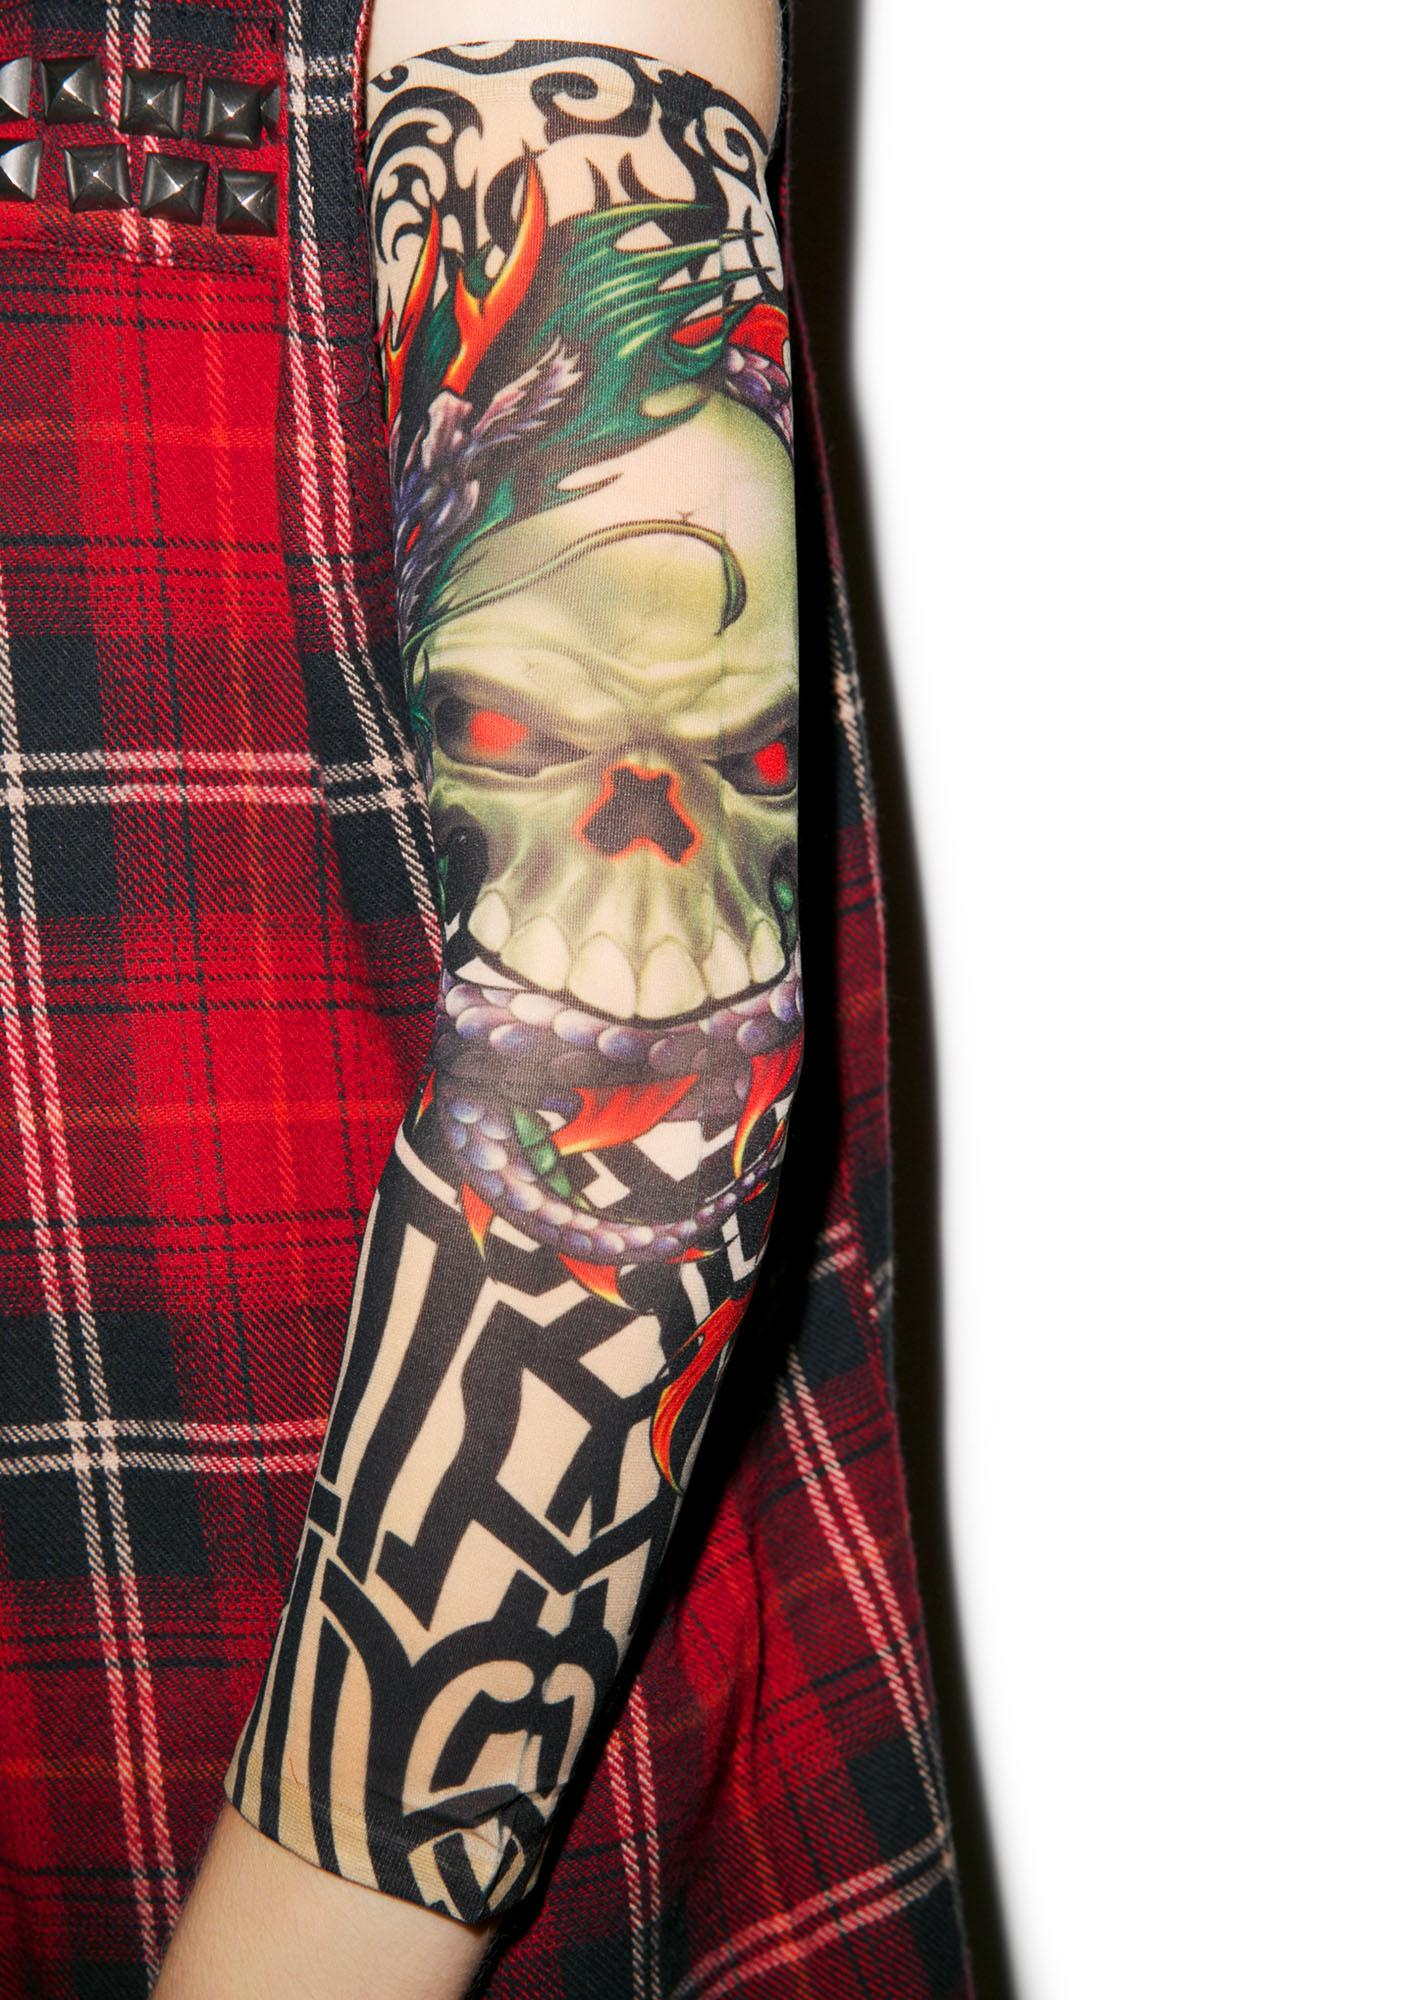 Enter the Skull Dragon Tattoo Sleeves